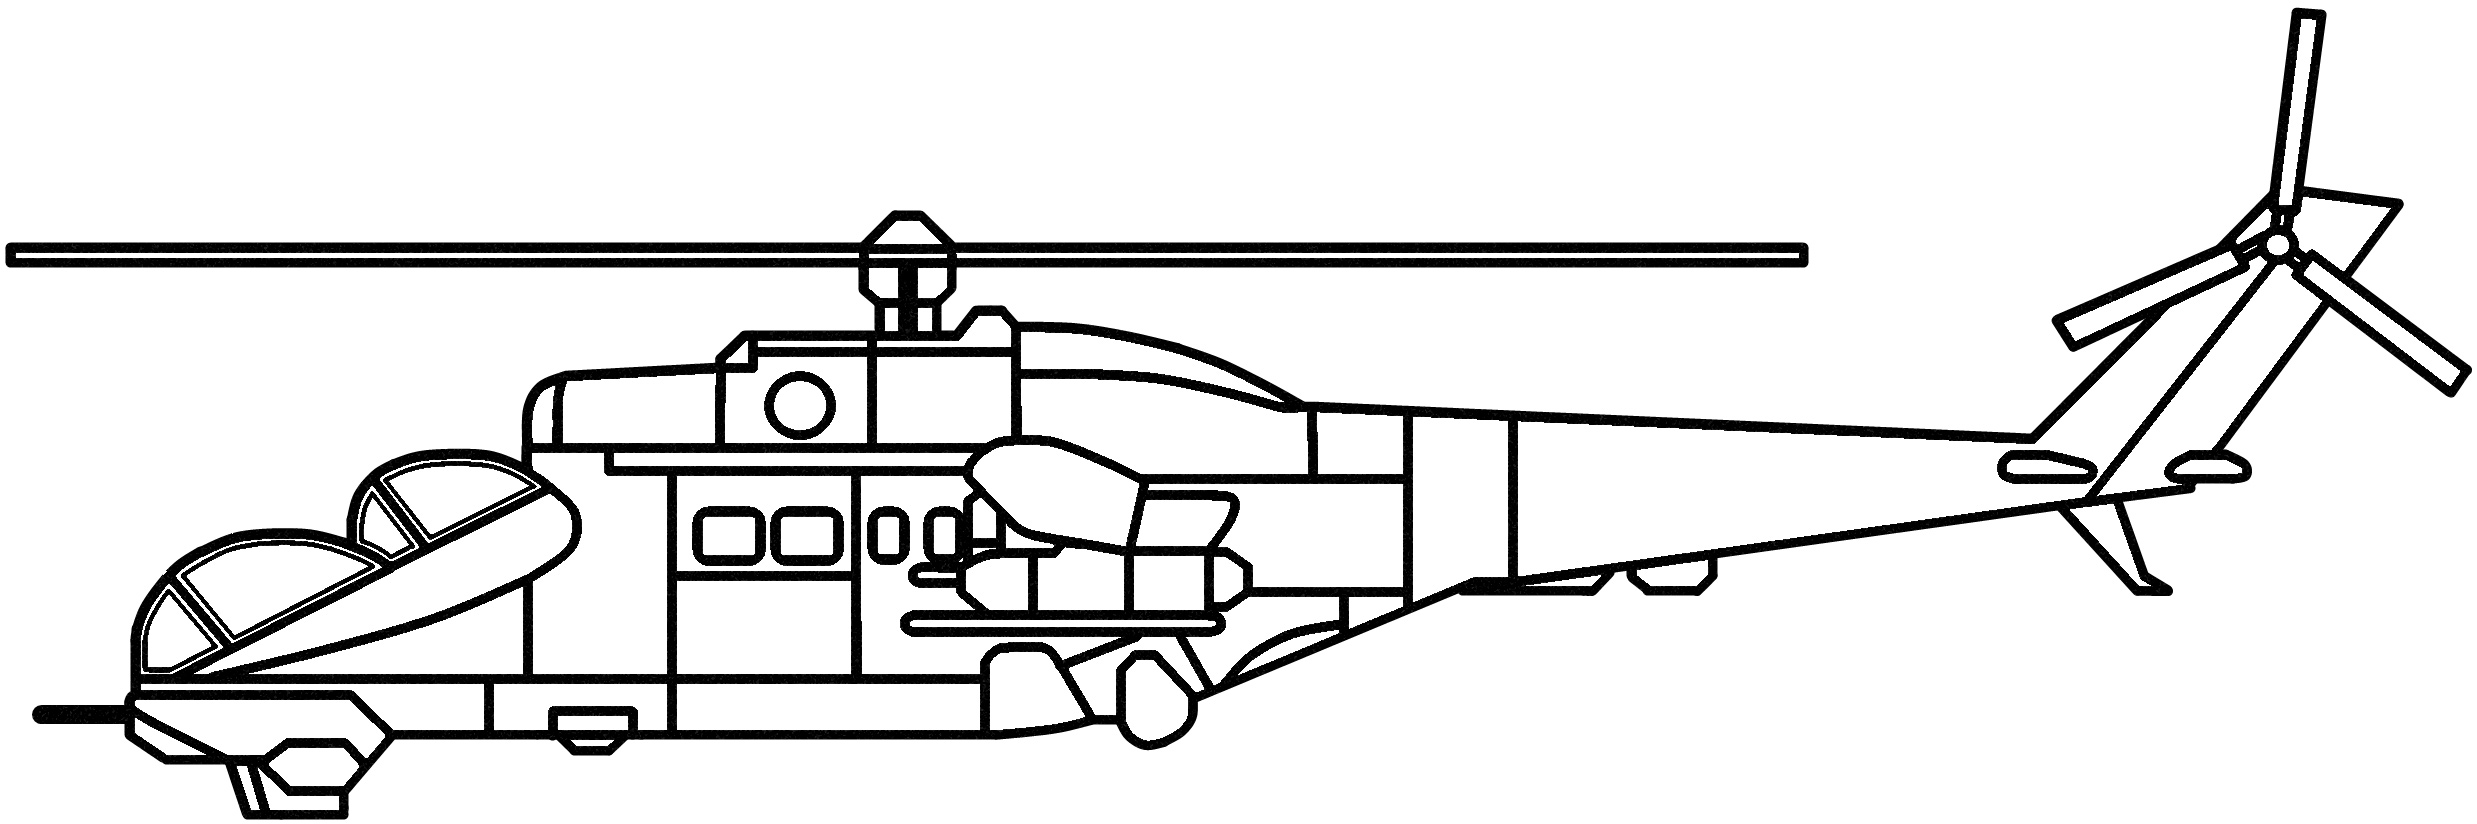 Helicopter side view coloring page